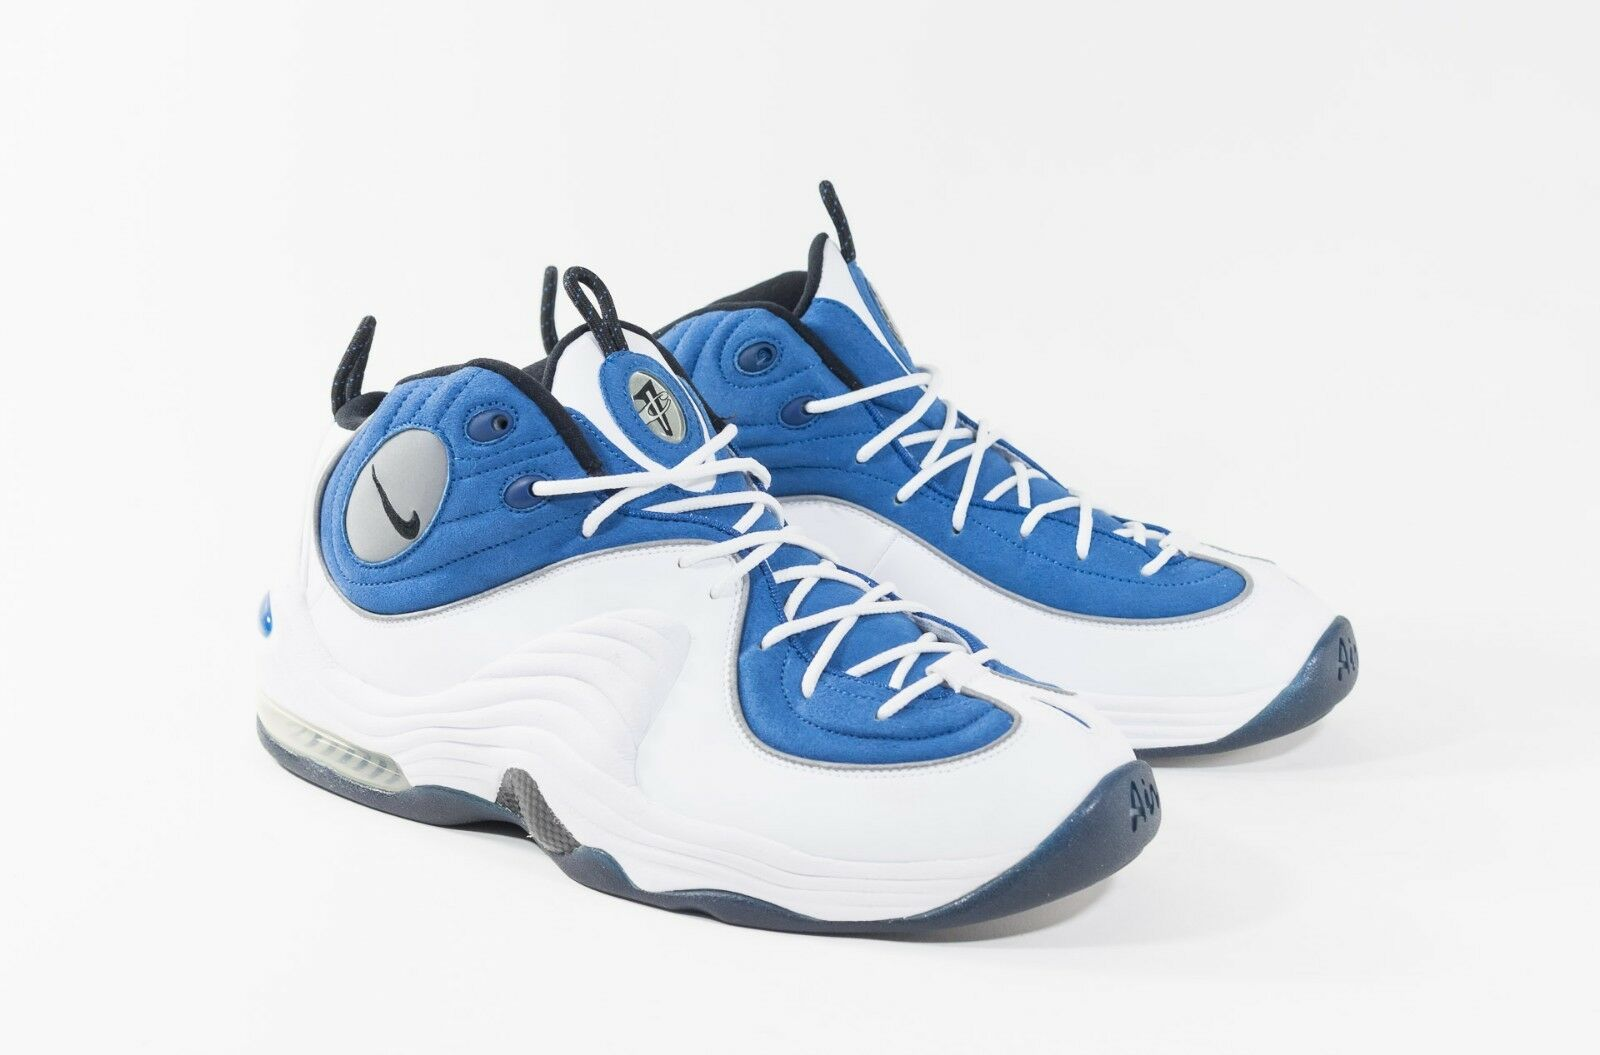 NIKE AIR PENNY 2 II 333886-401 ATLANTIC blueE 11 HARDAWAY ORLANDO MAGIC MEMPHIS